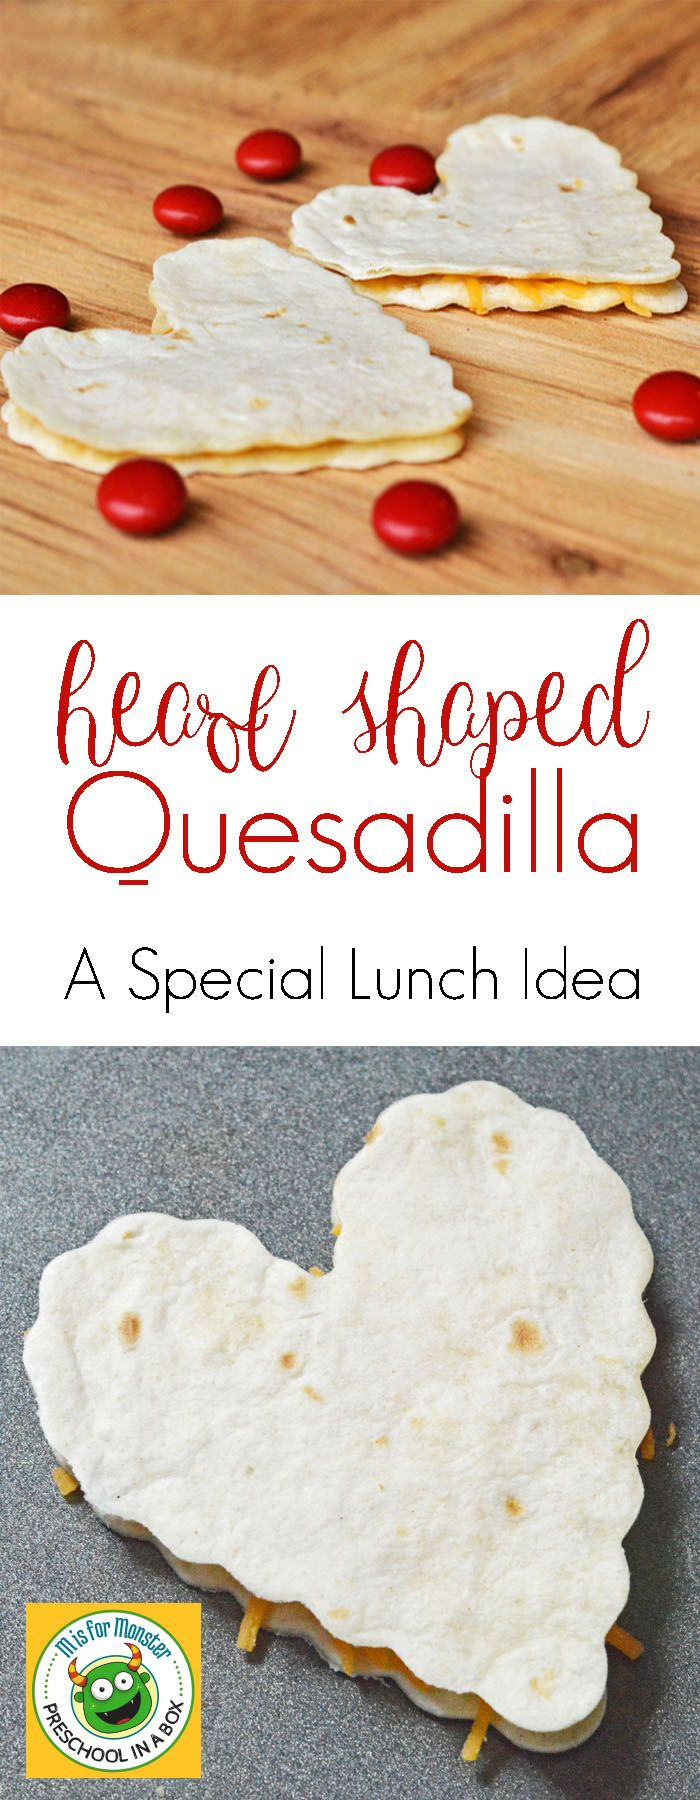 Heart Shaped Quesadillas - A Special Lunch Idea For Valentine's Day or another special event.